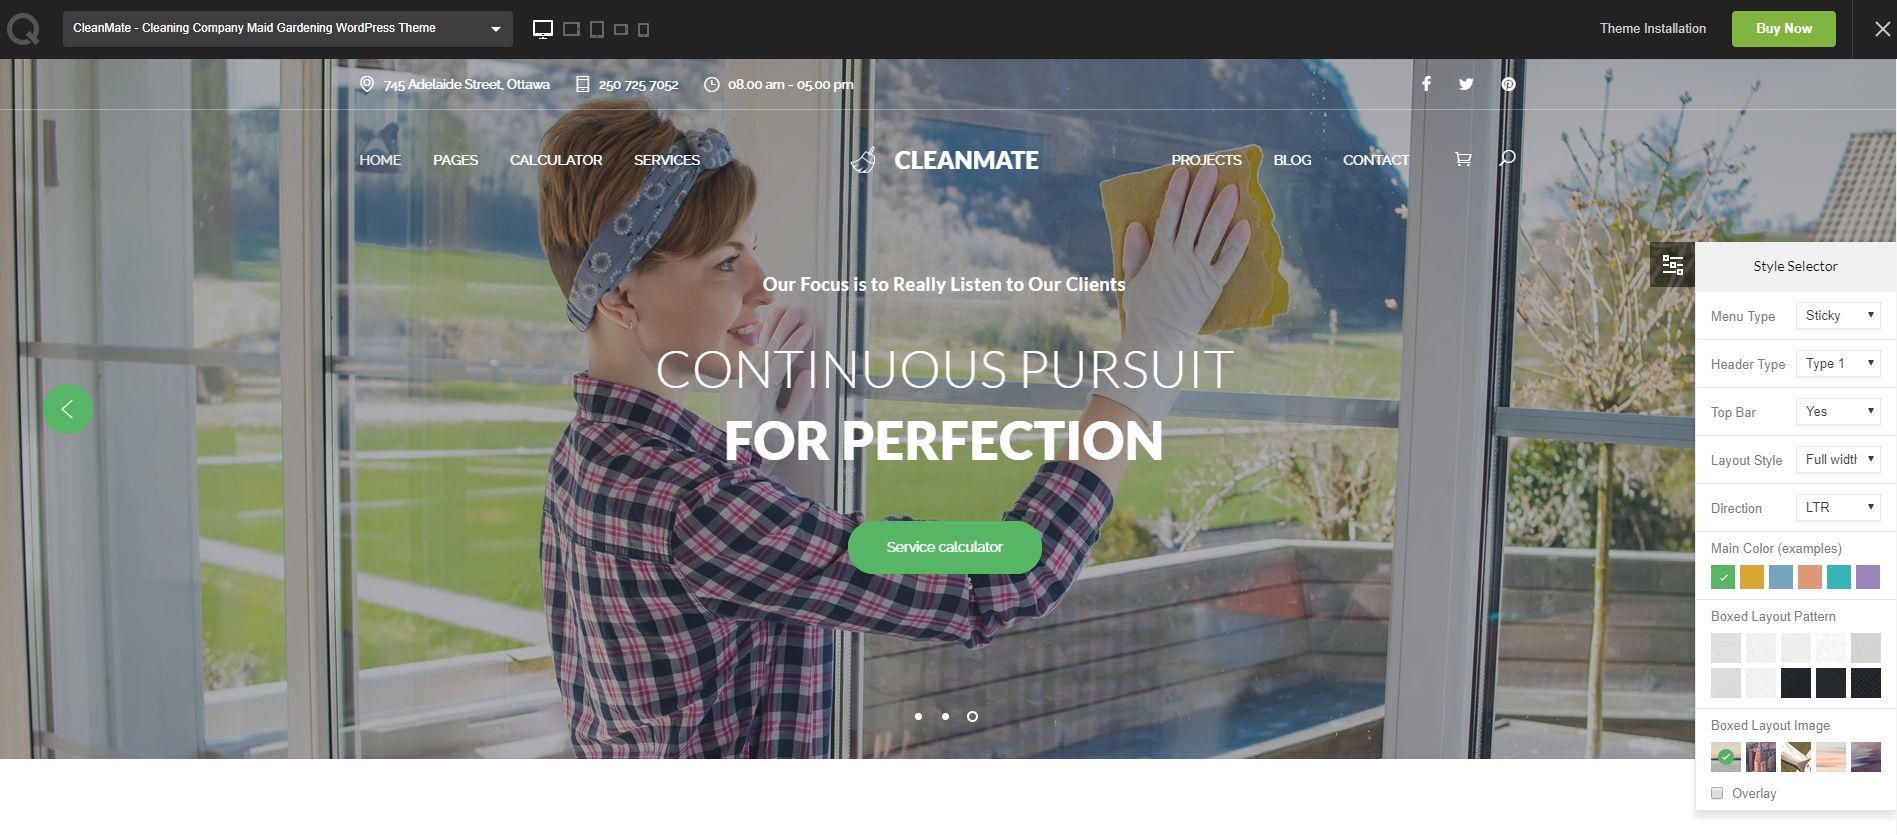 best-cleaning-services-wordpress-theme4